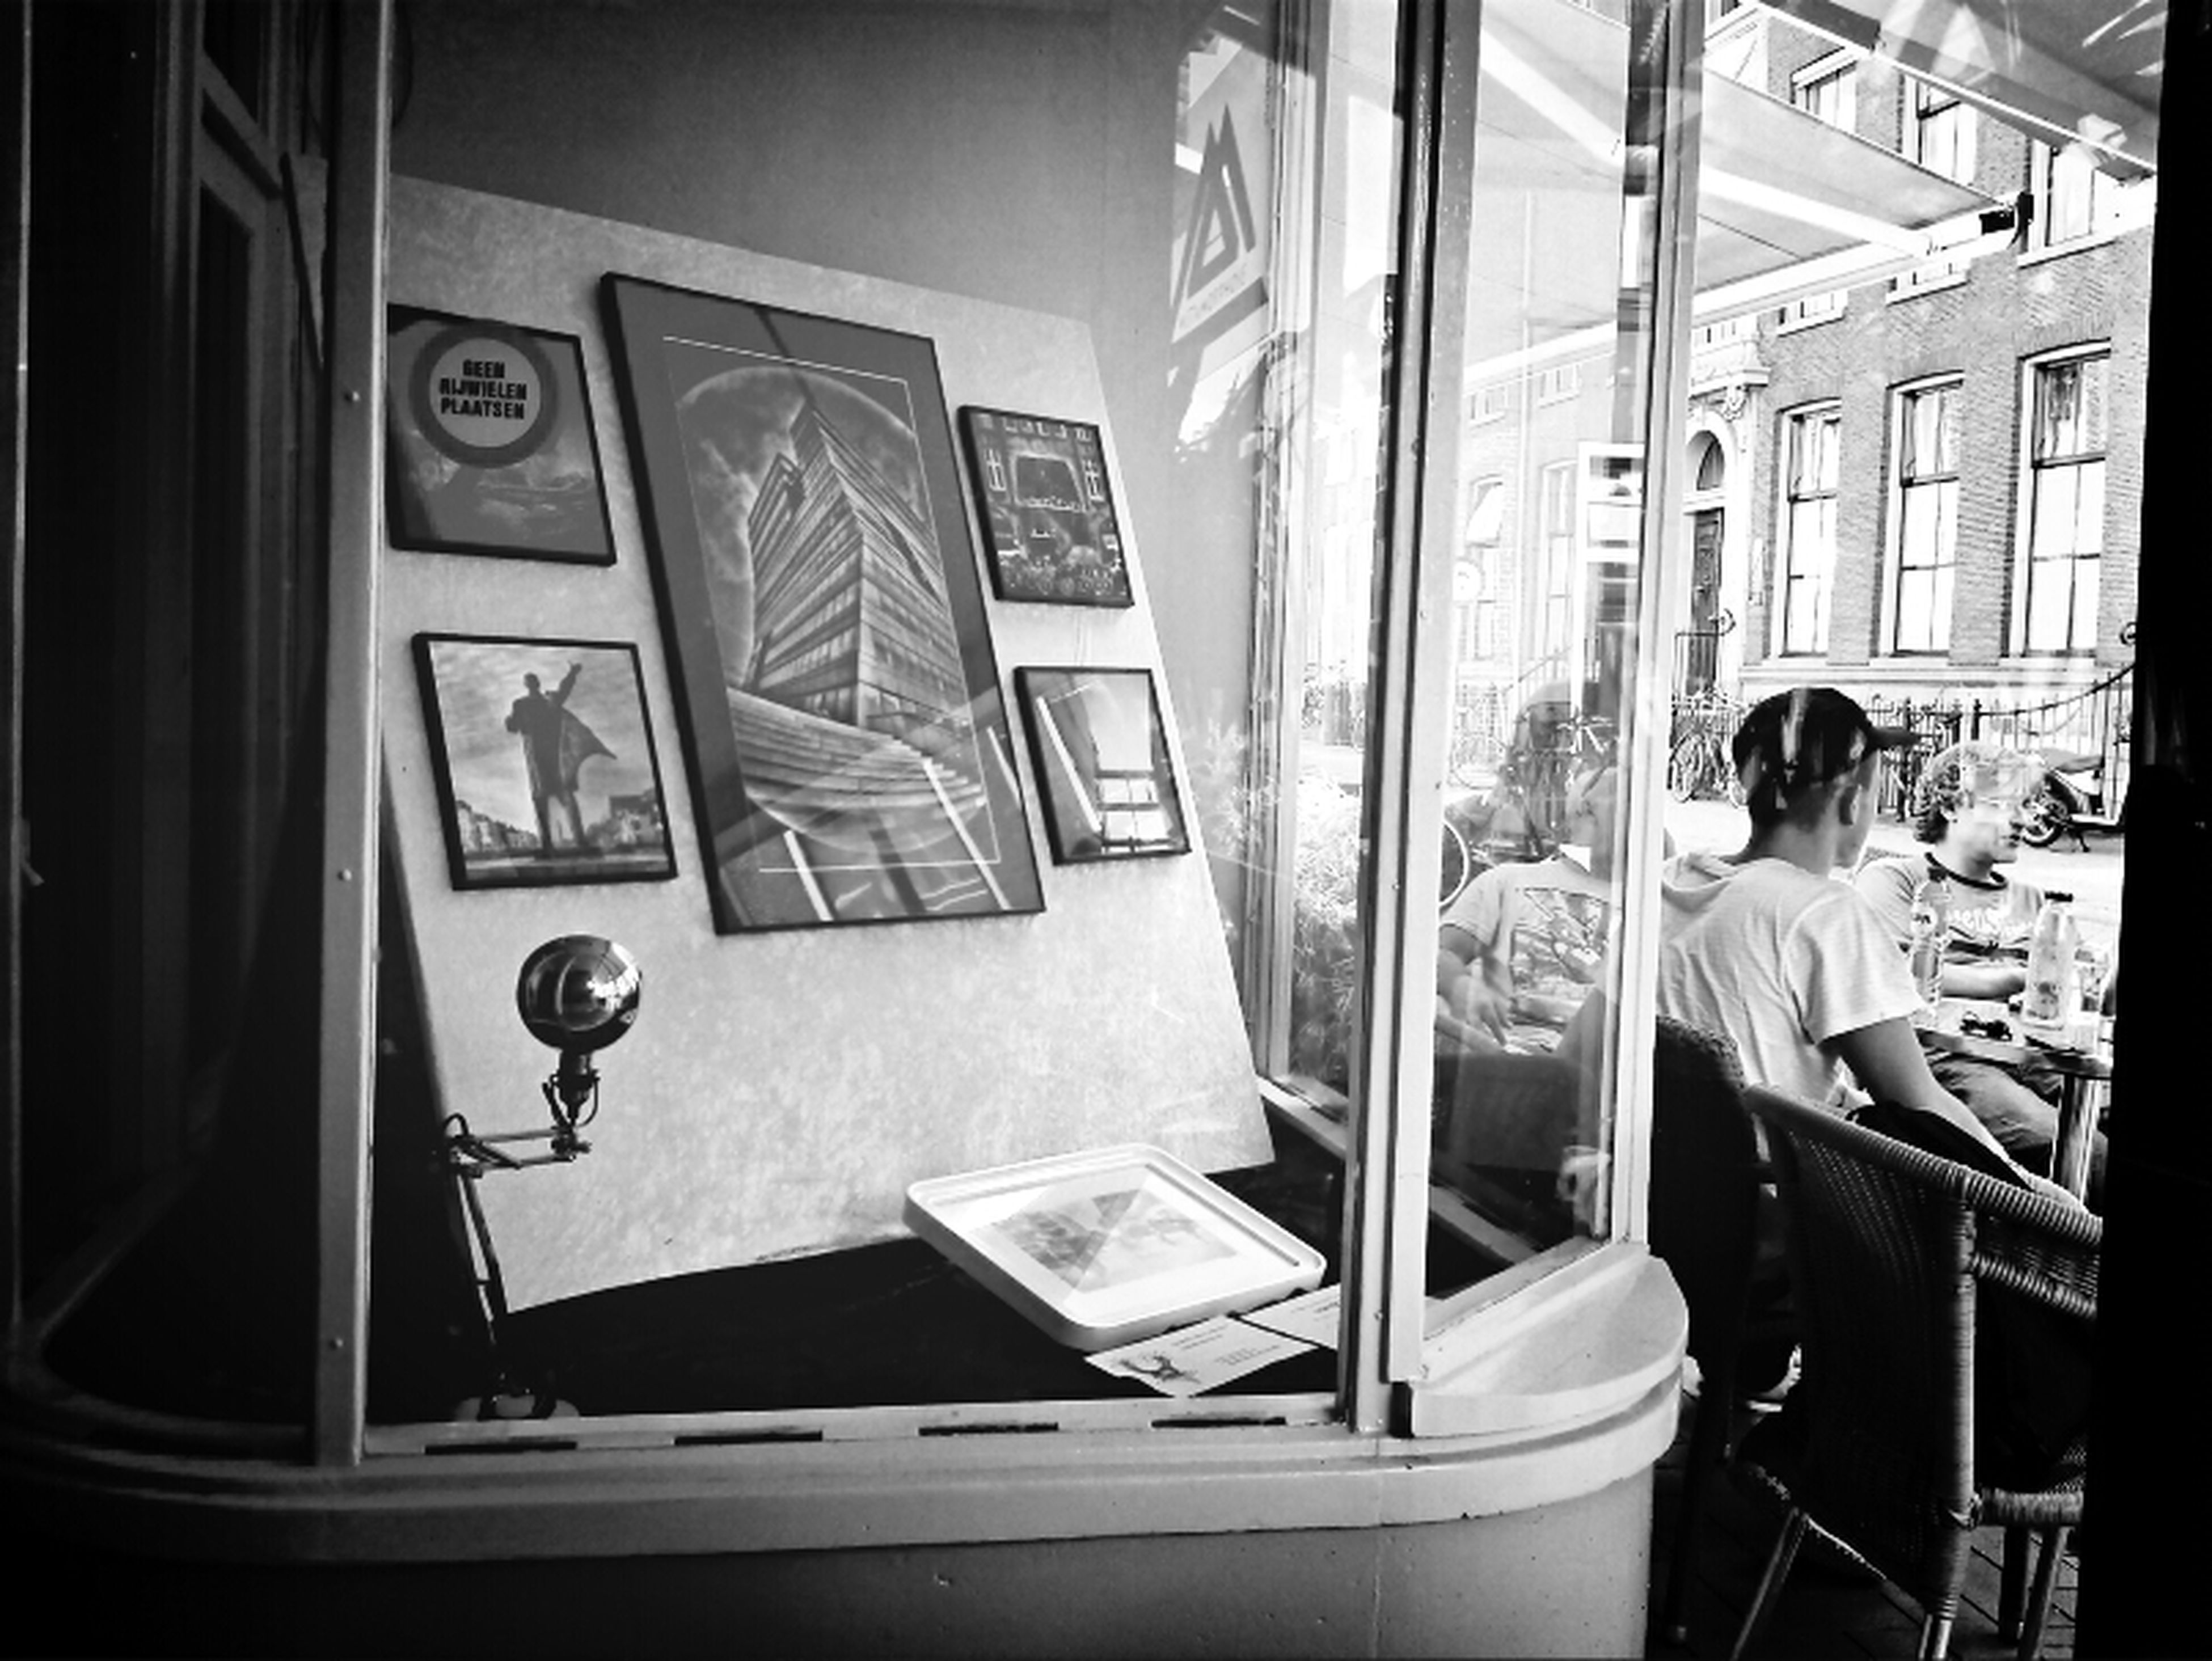 indoors, window, men, lifestyles, technology, sitting, leisure activity, communication, casual clothing, person, transportation, public transportation, day, rear view, glass - material, mode of transport, incidental people